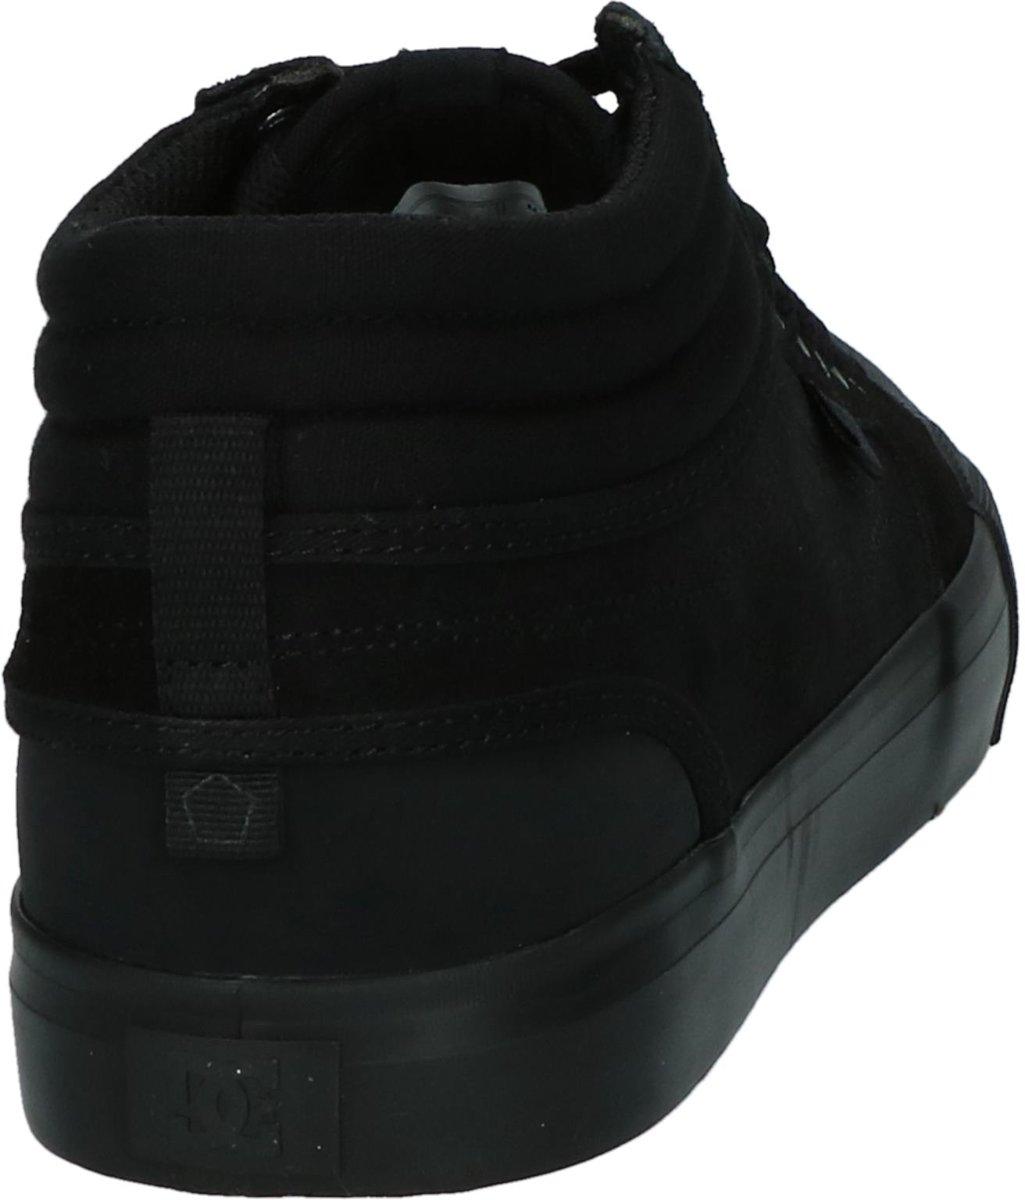 Chaussures Dc Brun Evan Chaussures Smith Pour Les Hommes i4xeK5wU